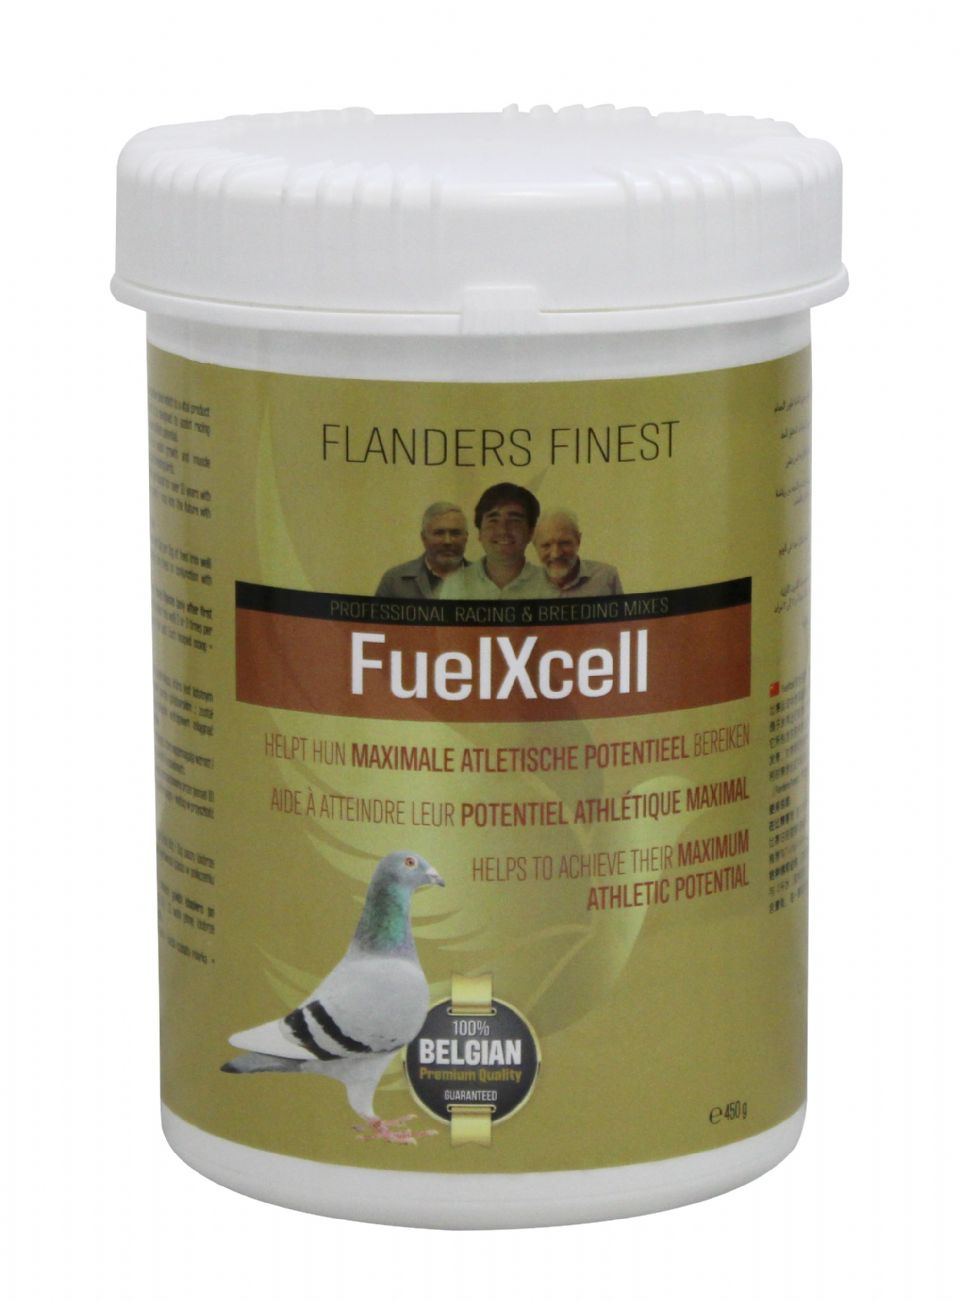 FuelXcell